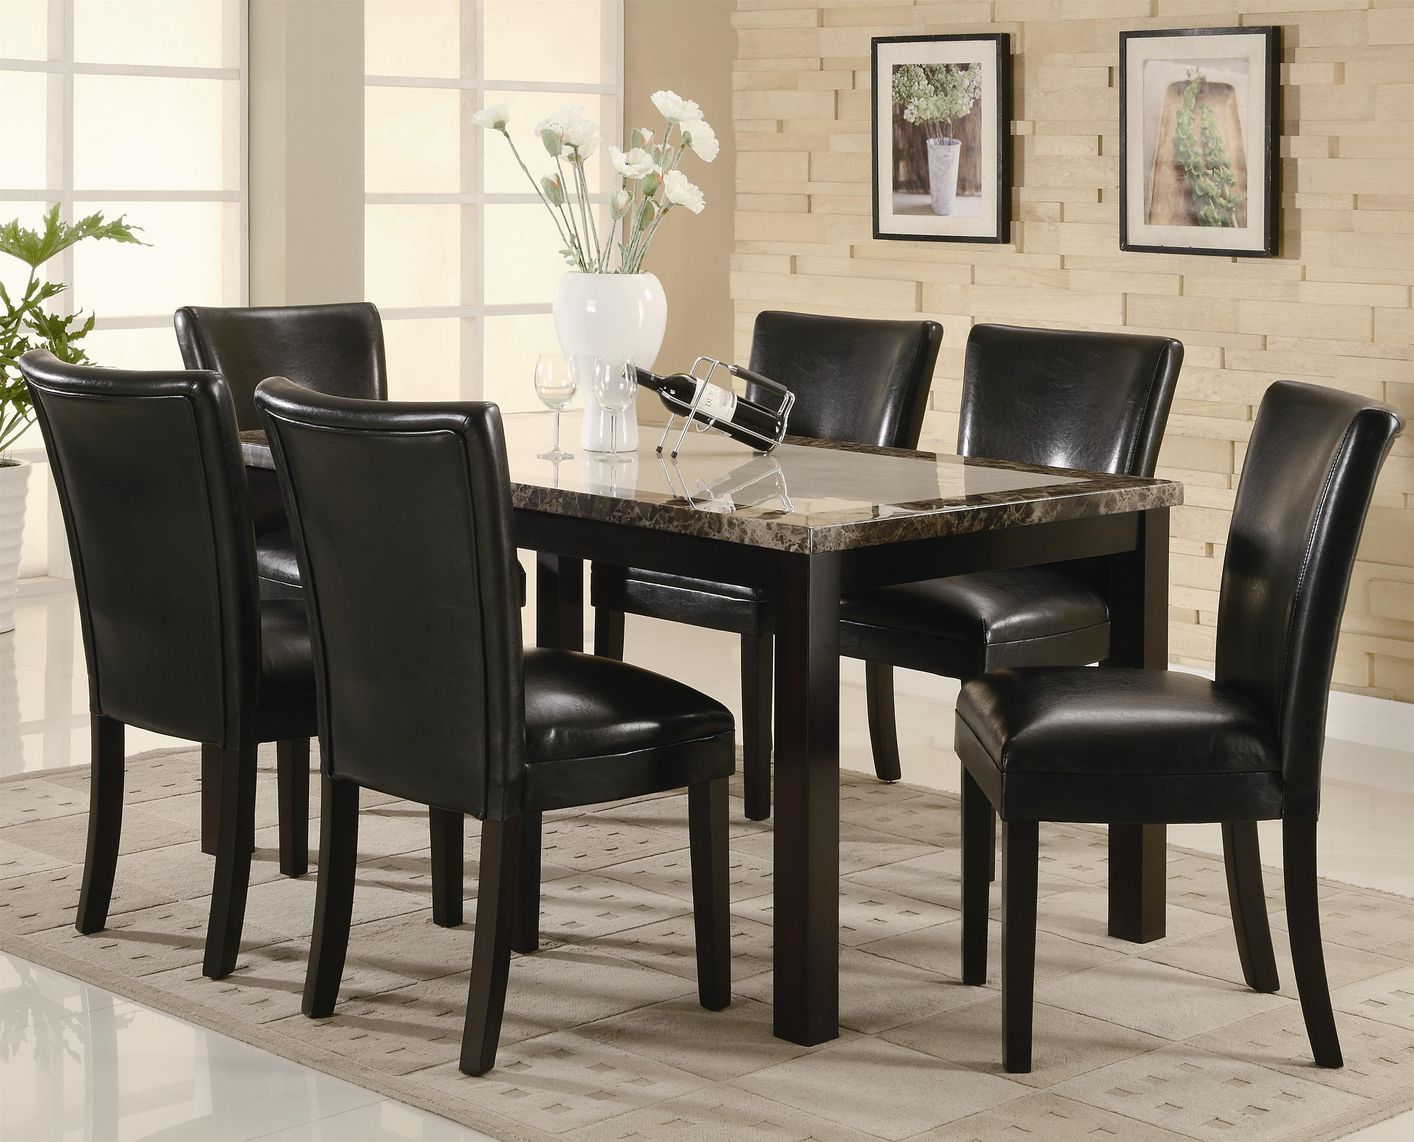 Carter Dark Brown Wood And Marble Dining Table Set Steal